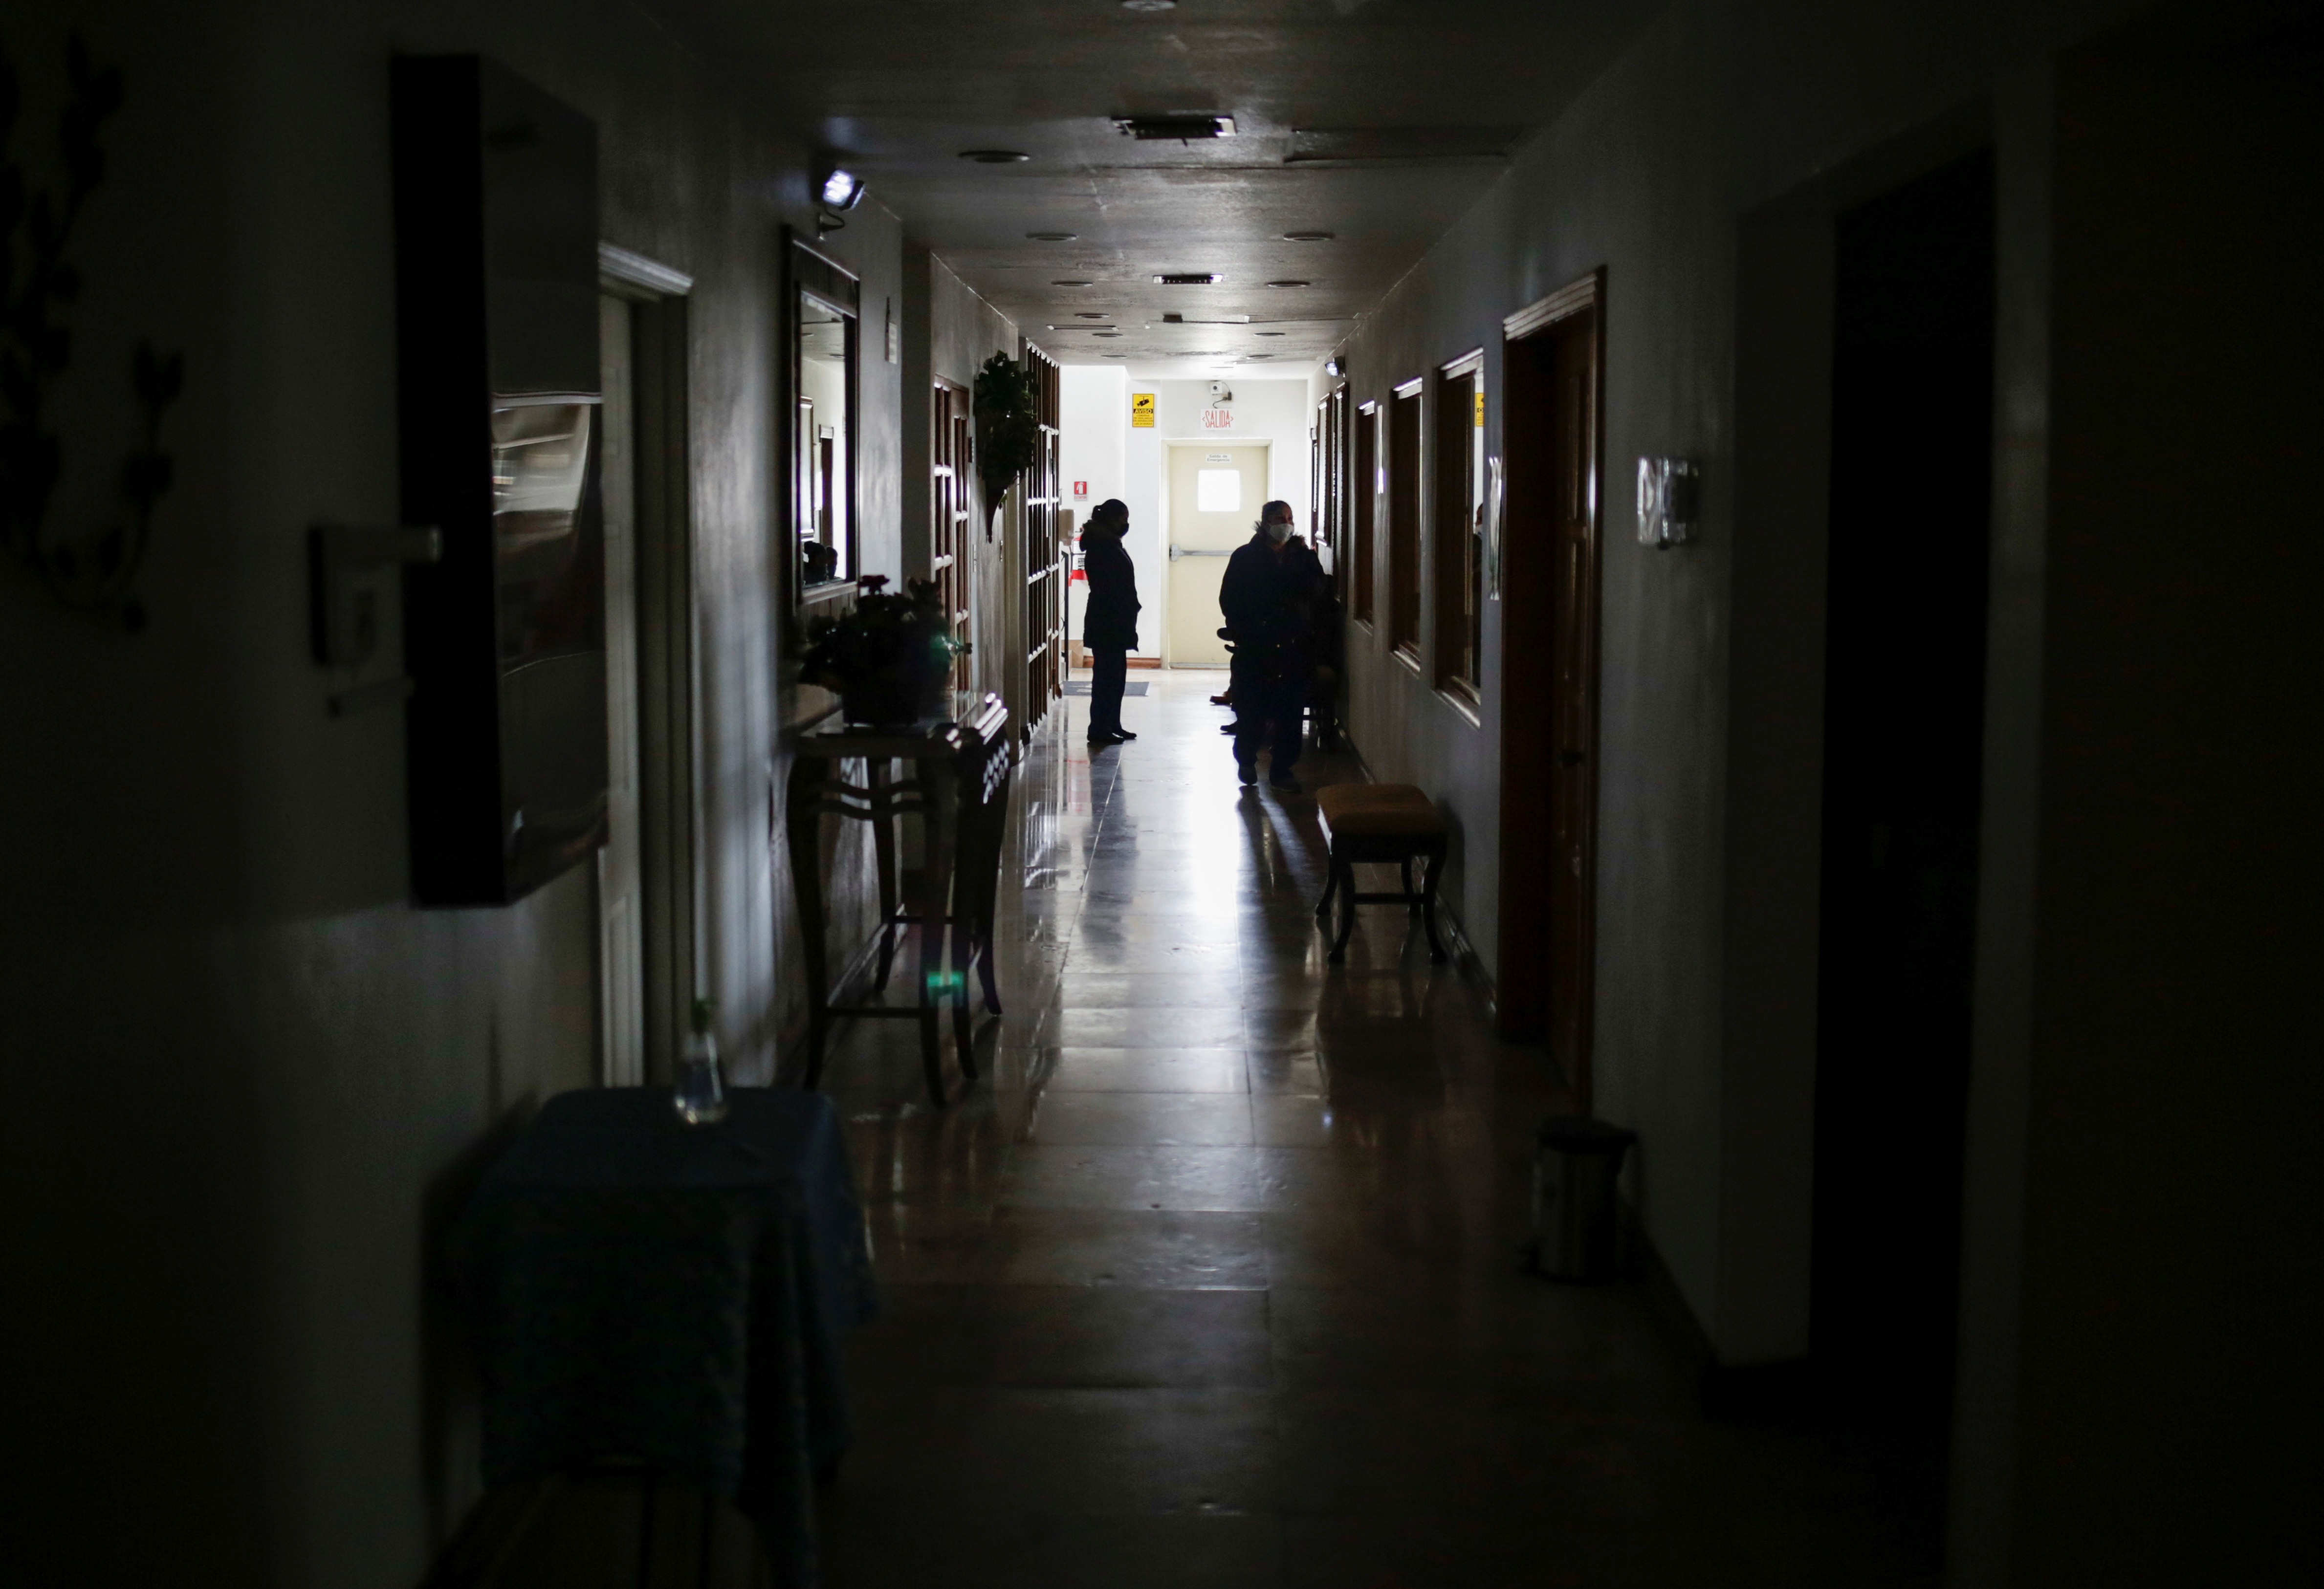 People wait in a corridor during an outage in Mexico's electricity network, in Ciudad Juarez, Mexico February 15, 2021. REUTERS/Jose Luis Gonzalez